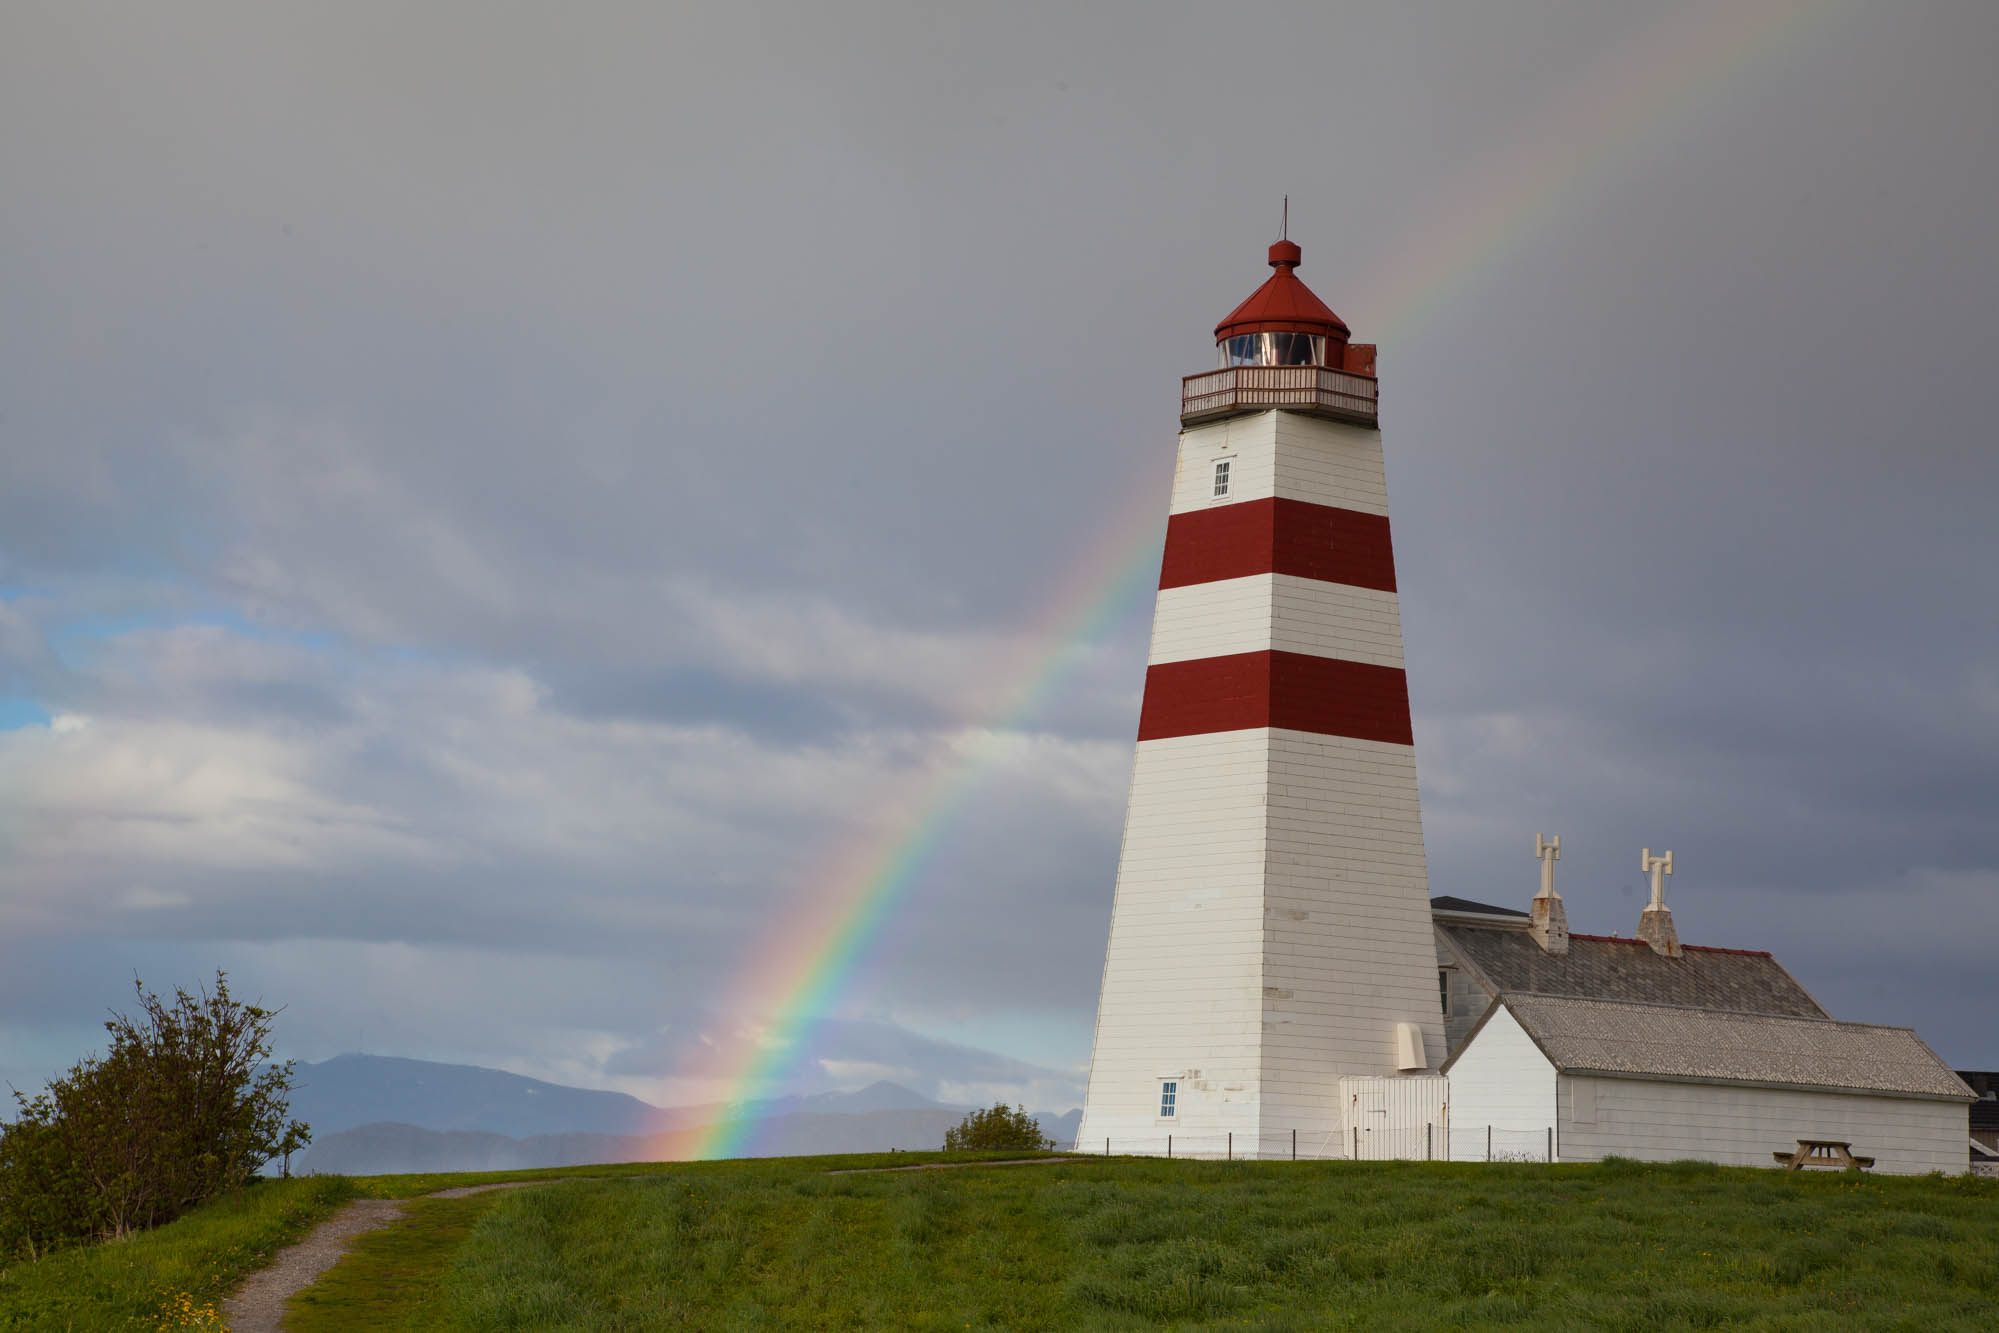 Rainbow over the lighthouse. Photo: John Einar Sandvand